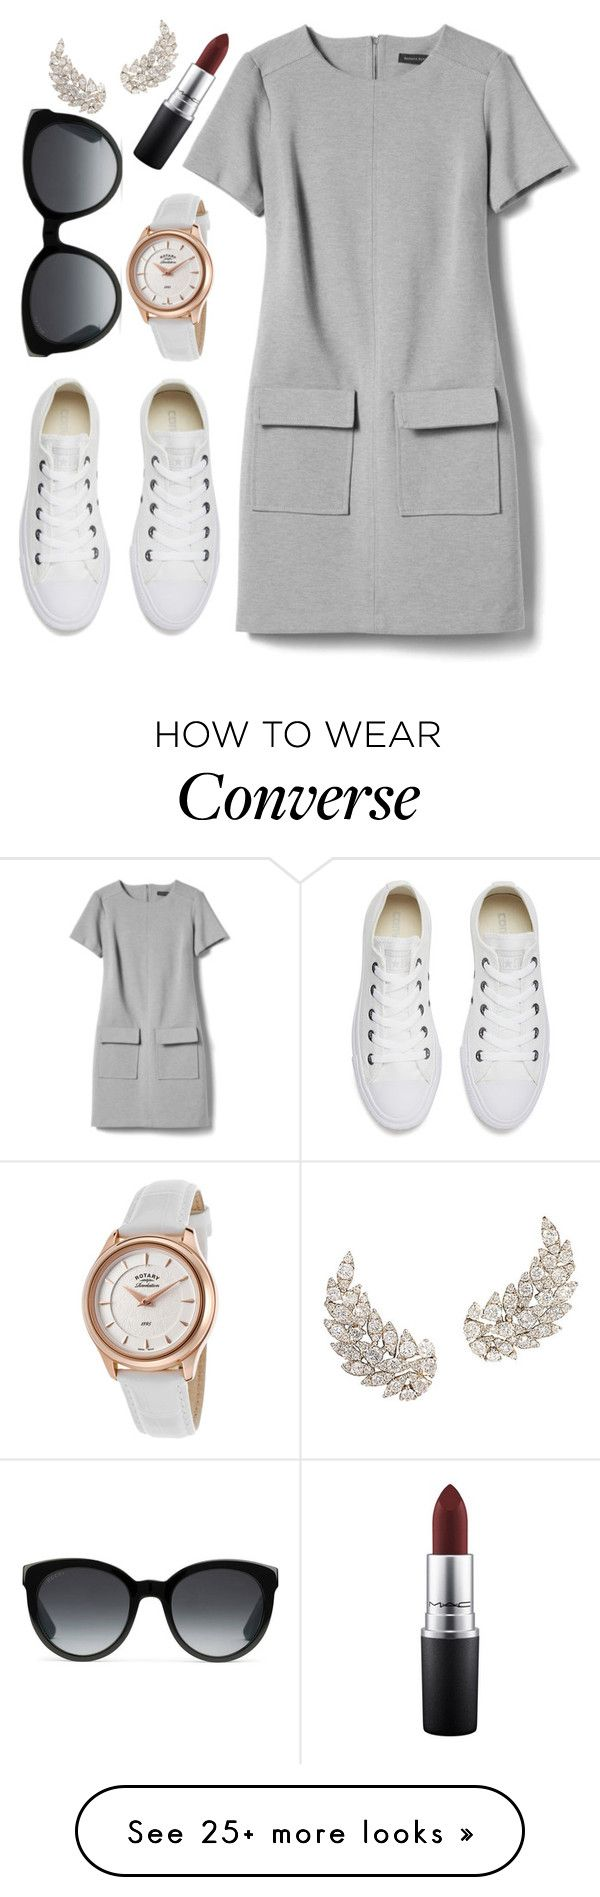 """""""saturday"""" by adele-adik on Polyvore featuring Banana Republic, Converse, Rotary, Gucci and MAC Cosmetics"""